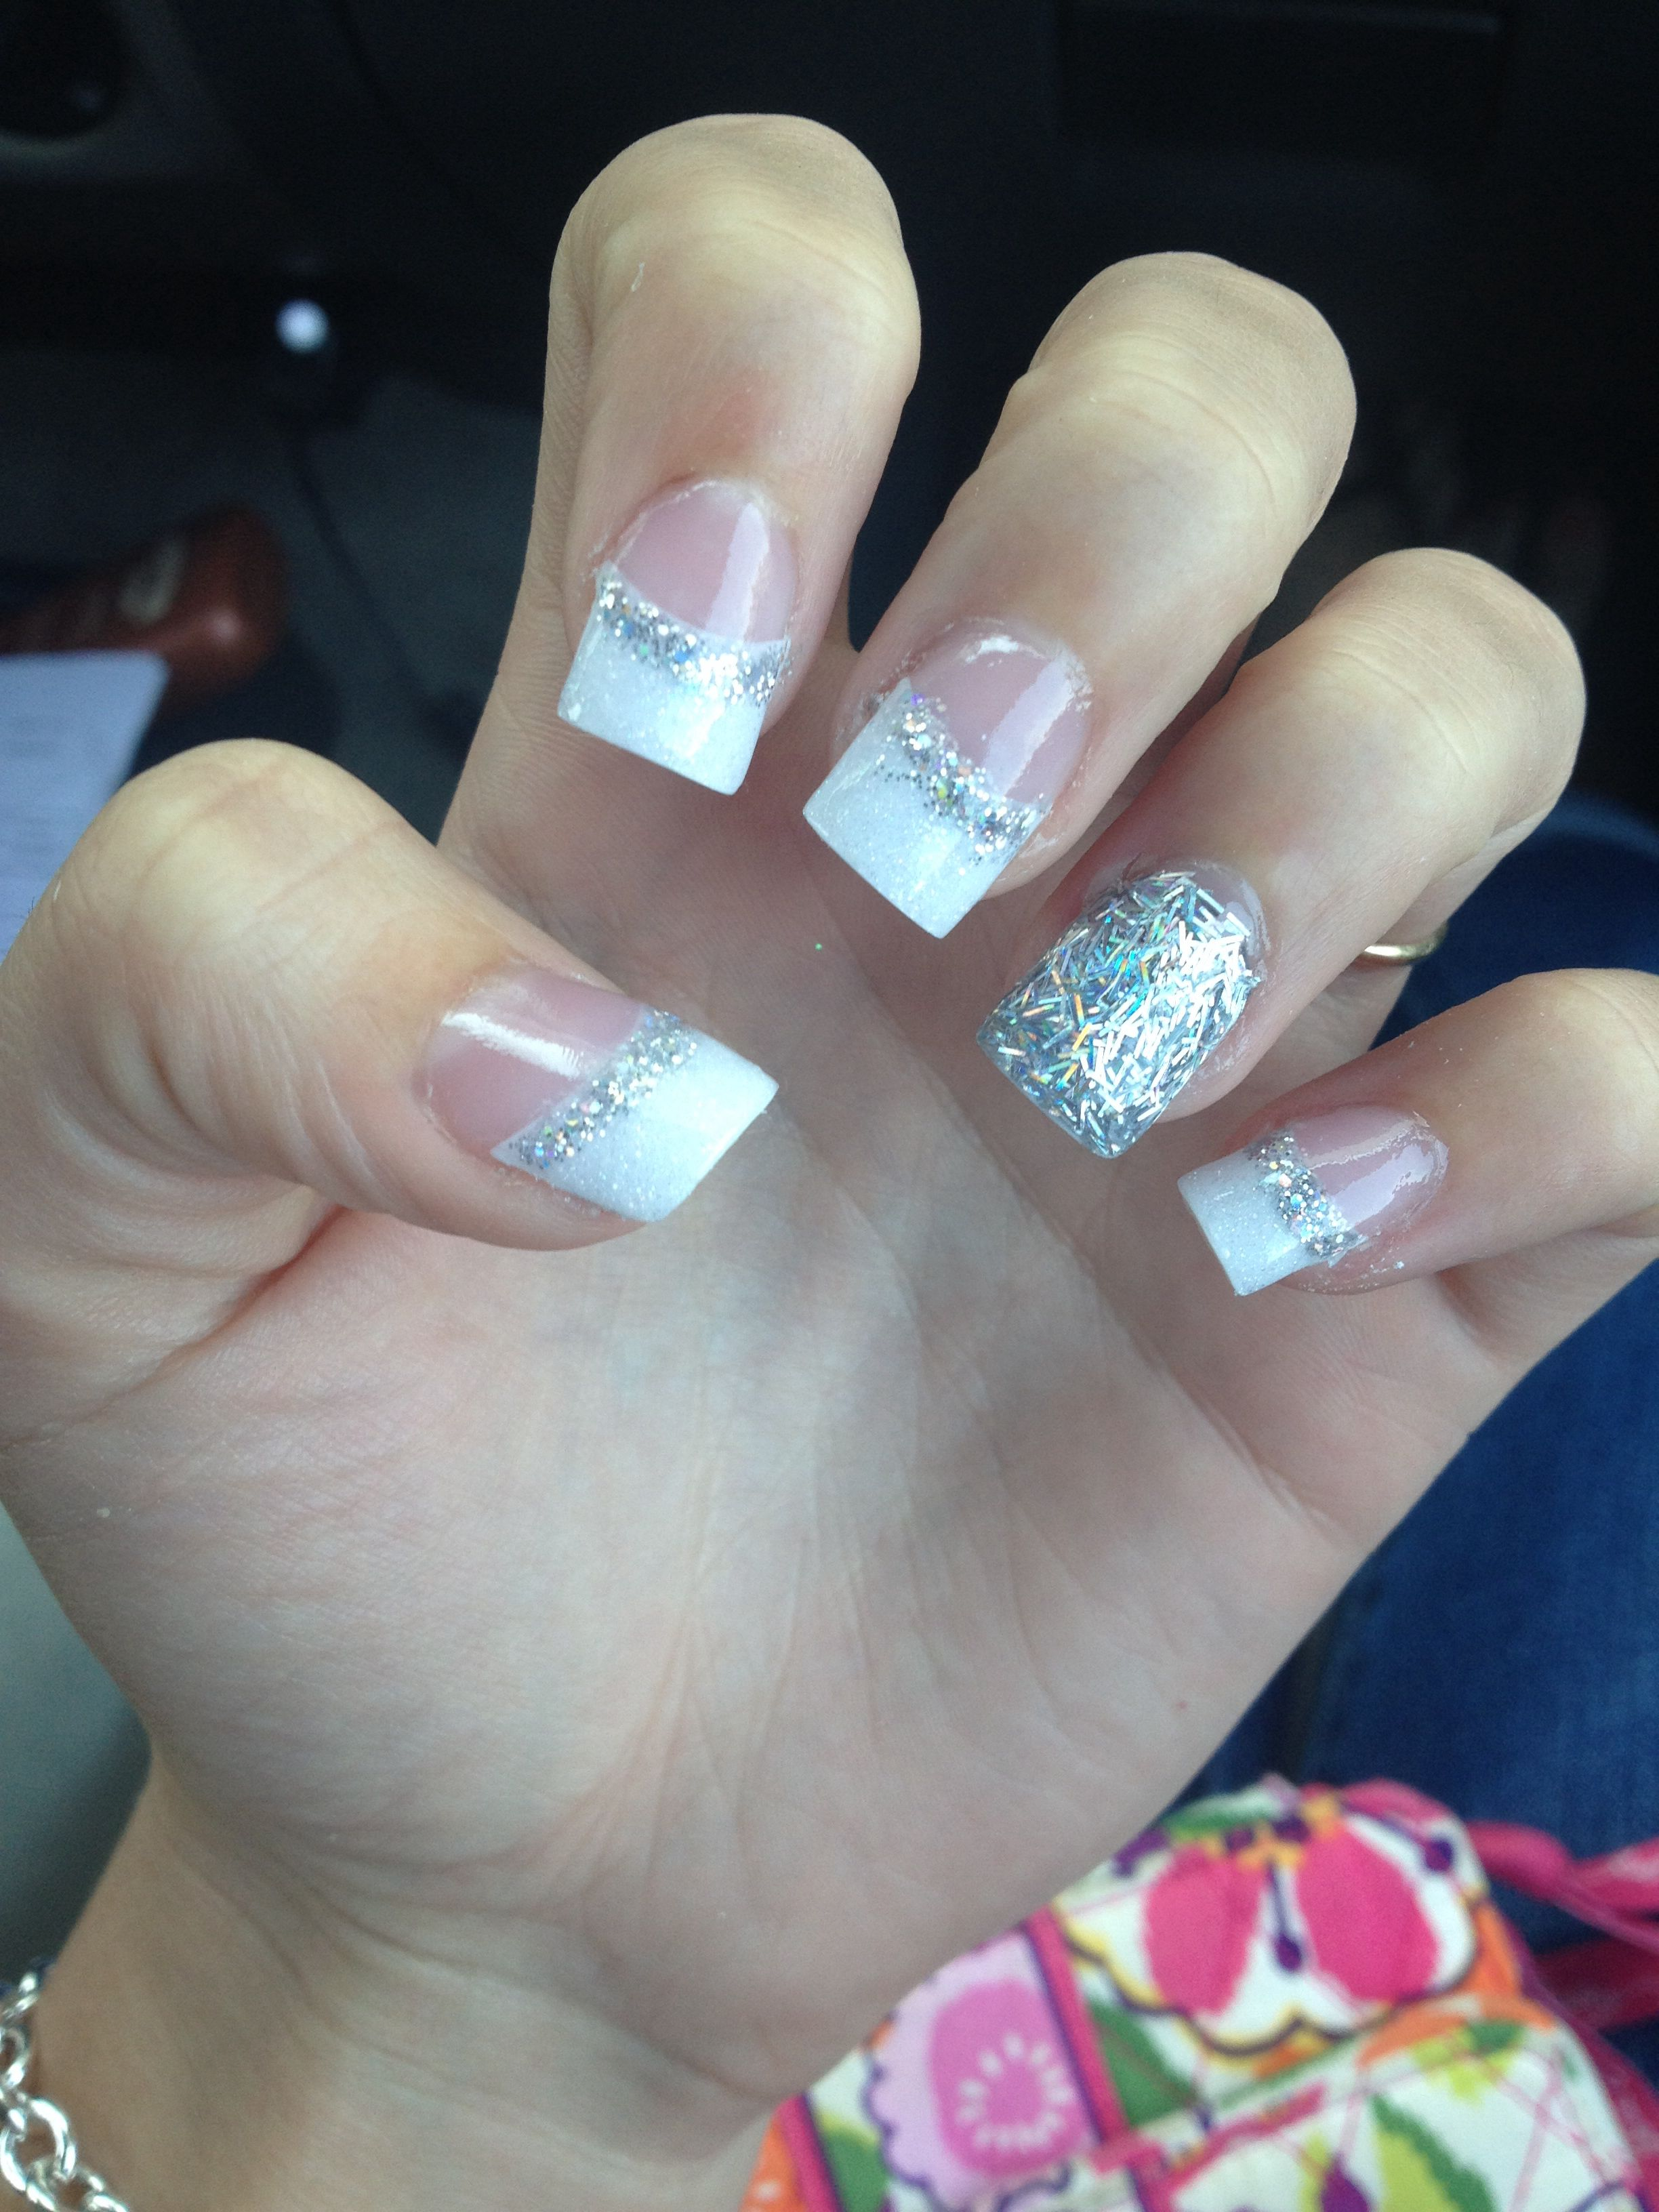 Cute idea for prom nails | Claws | Pinterest | Prom nails, Prom hair ...